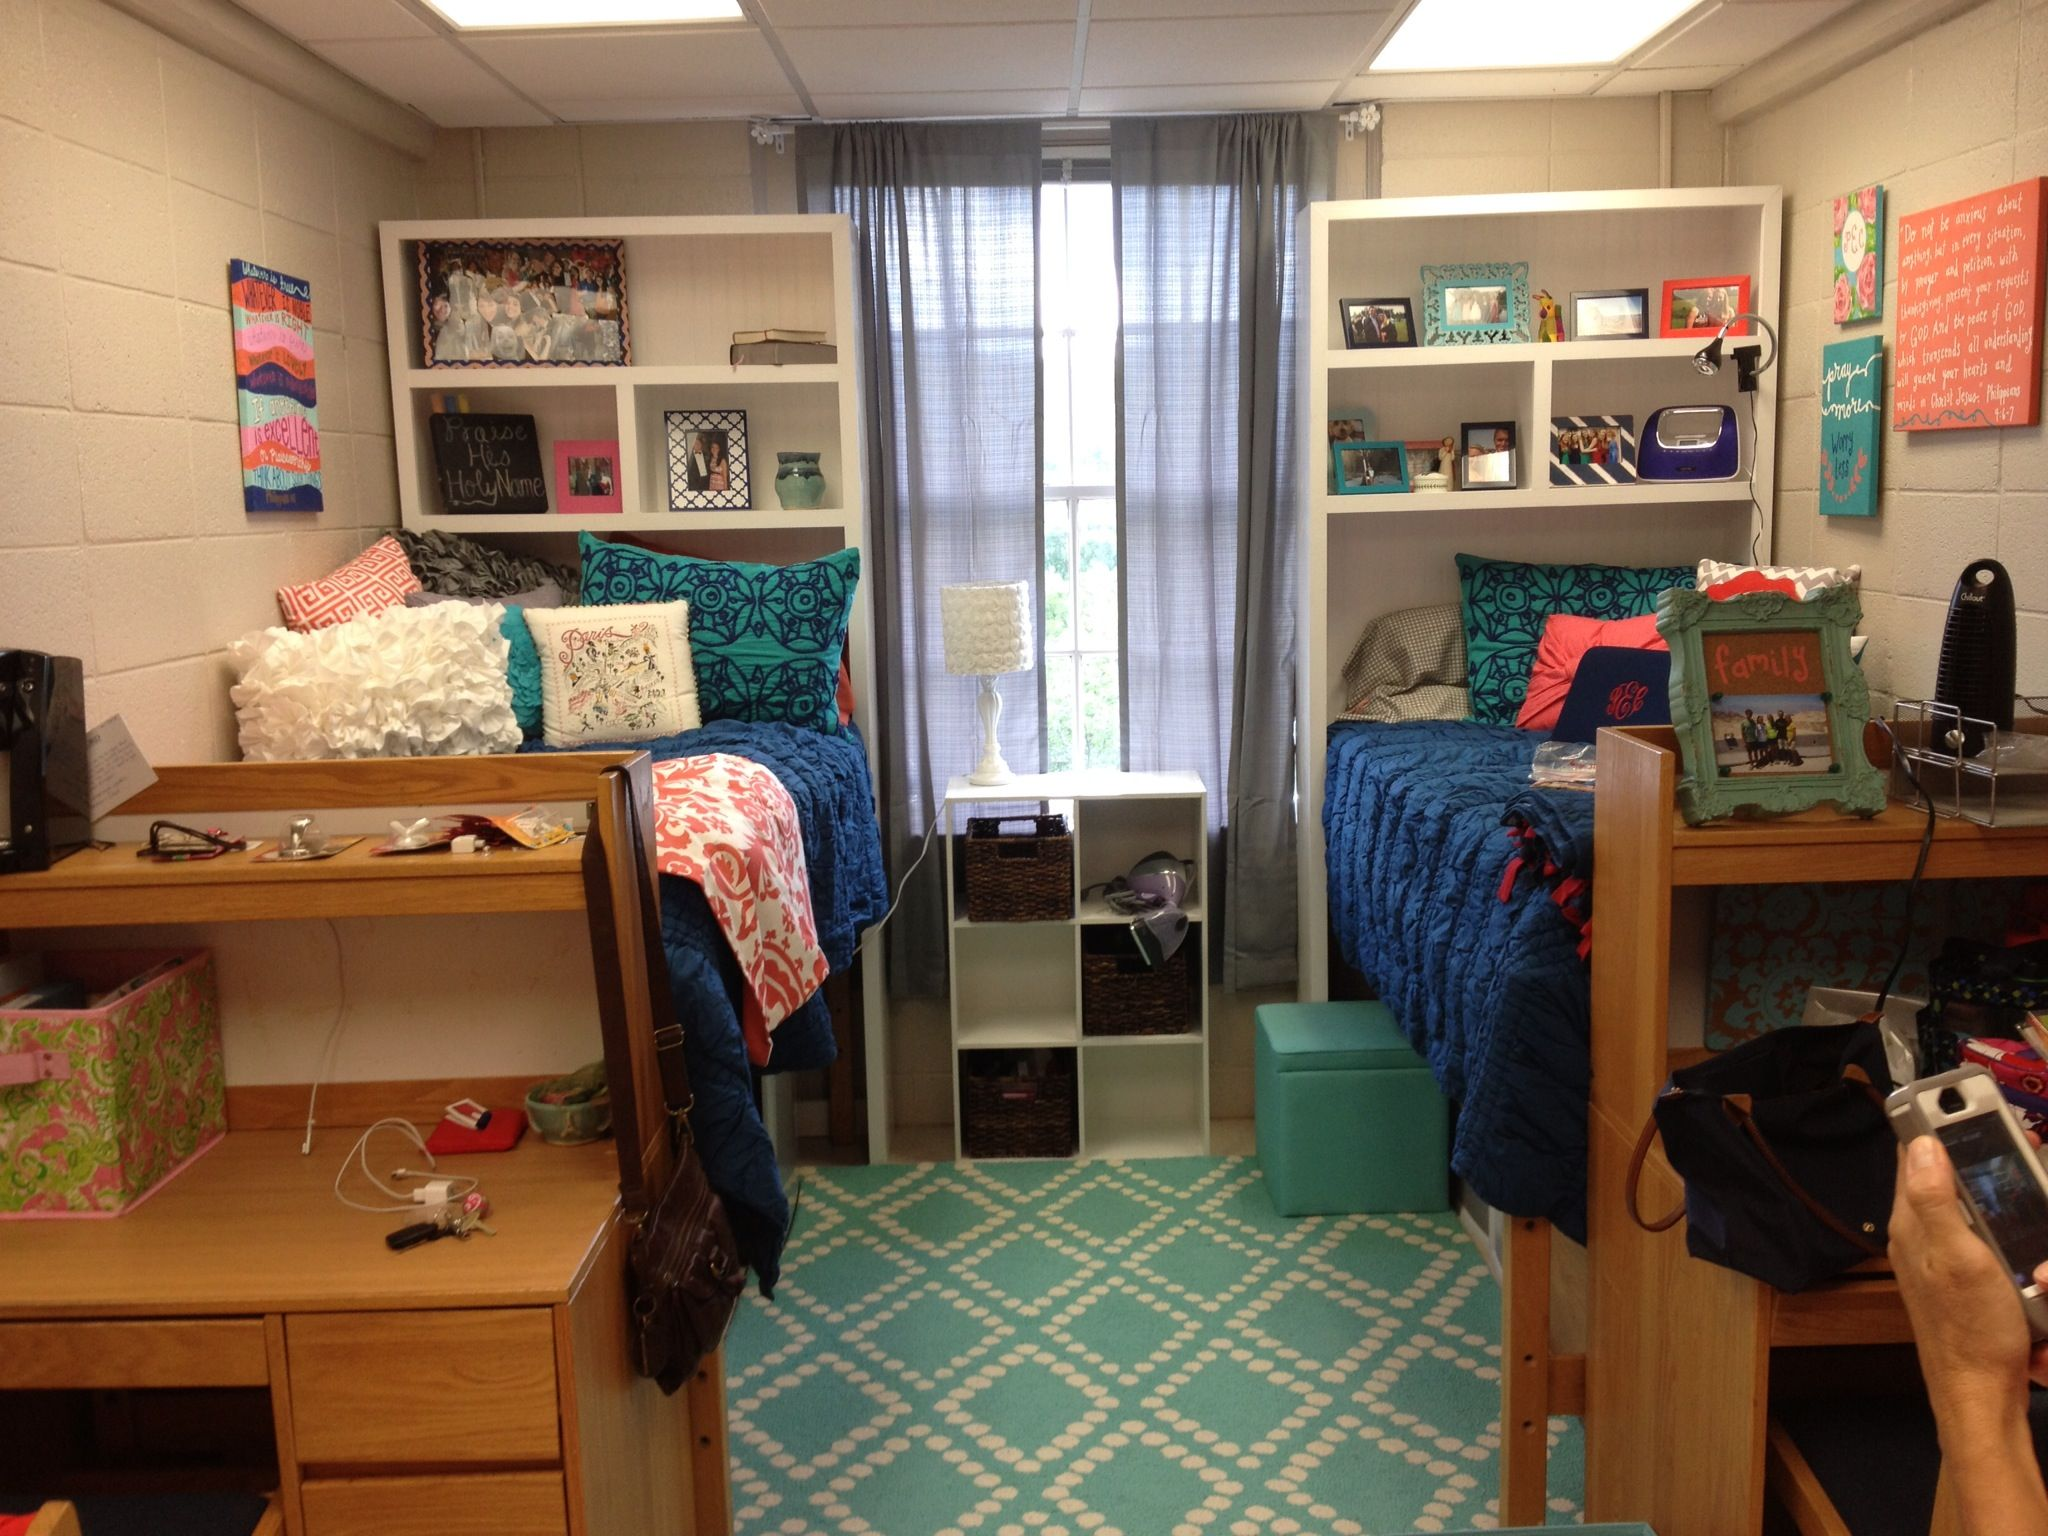 Affordable On-Campus Housing Options at Northeastern University